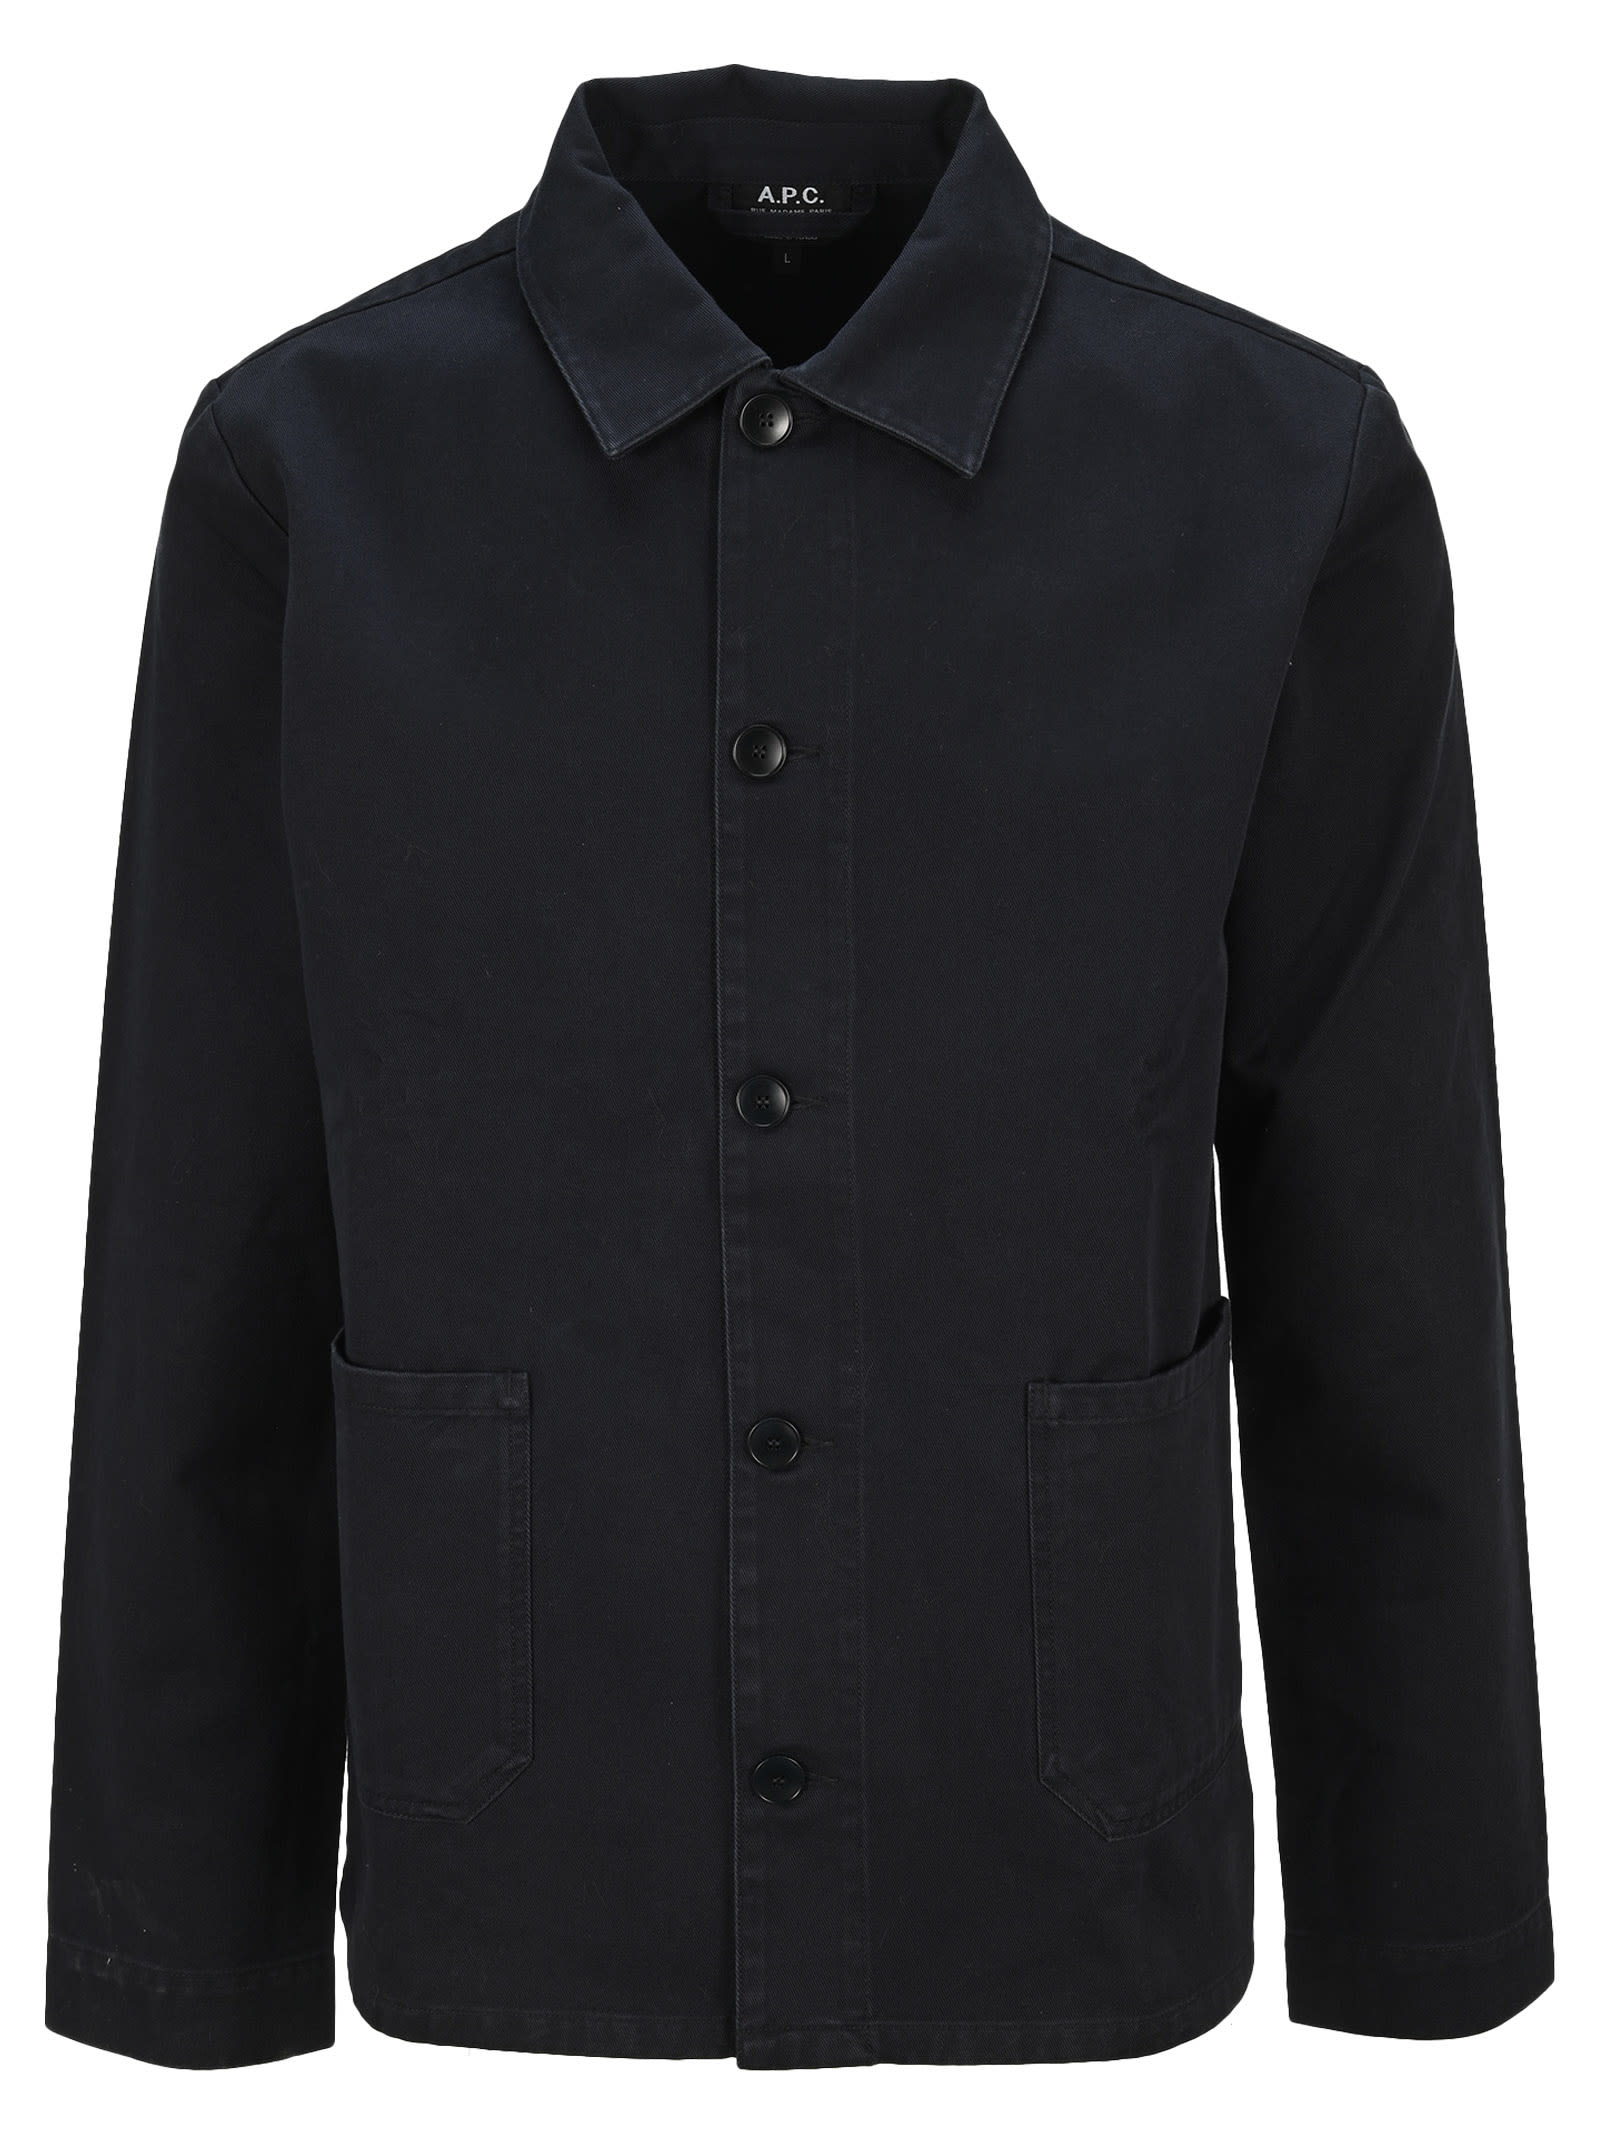 A.p.c. Classic Shirt Jacket In Black